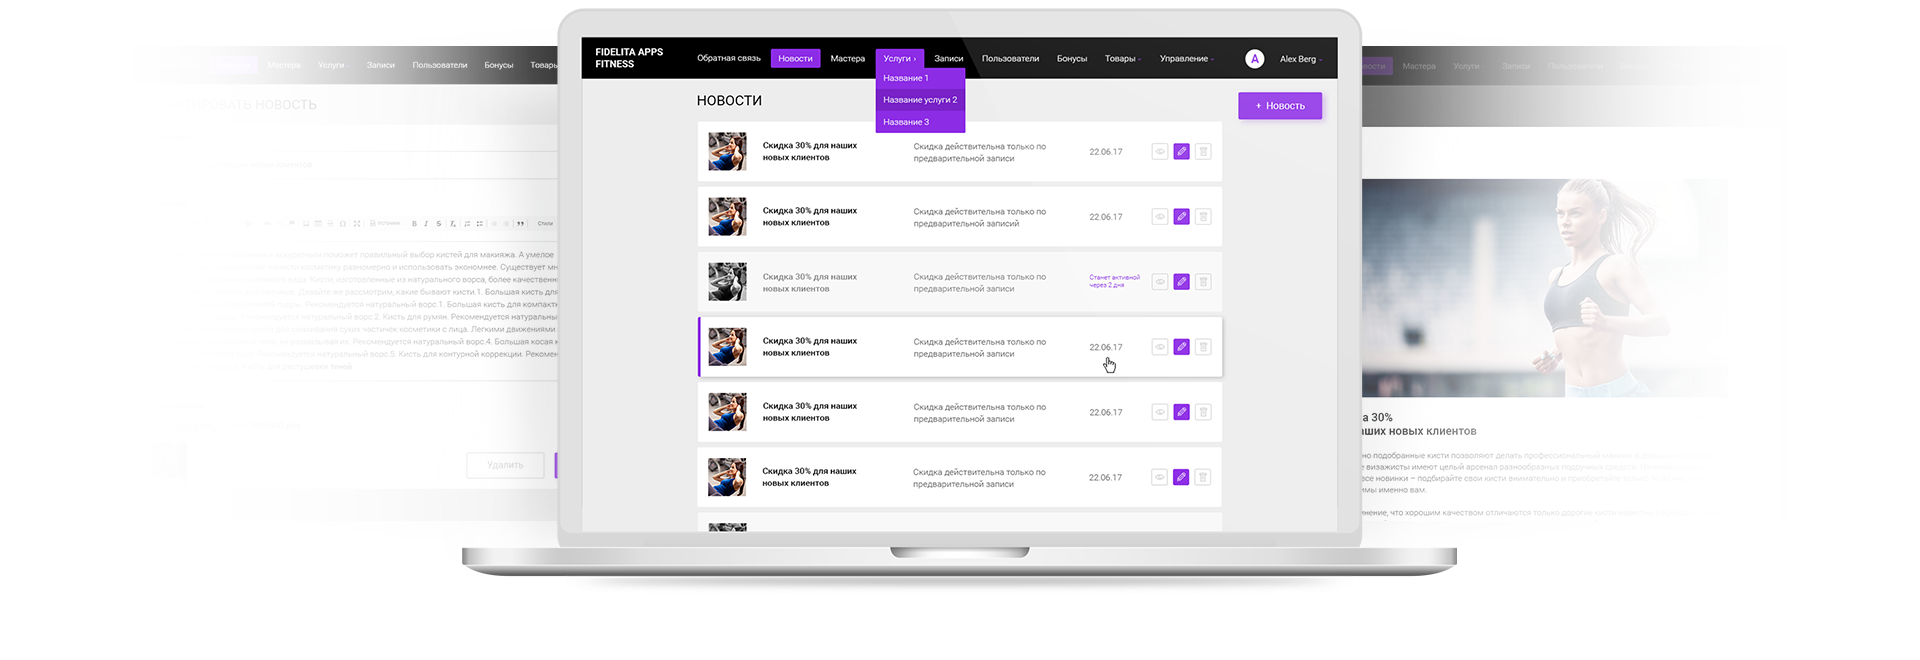 Fidelita Fitness Admin Panel